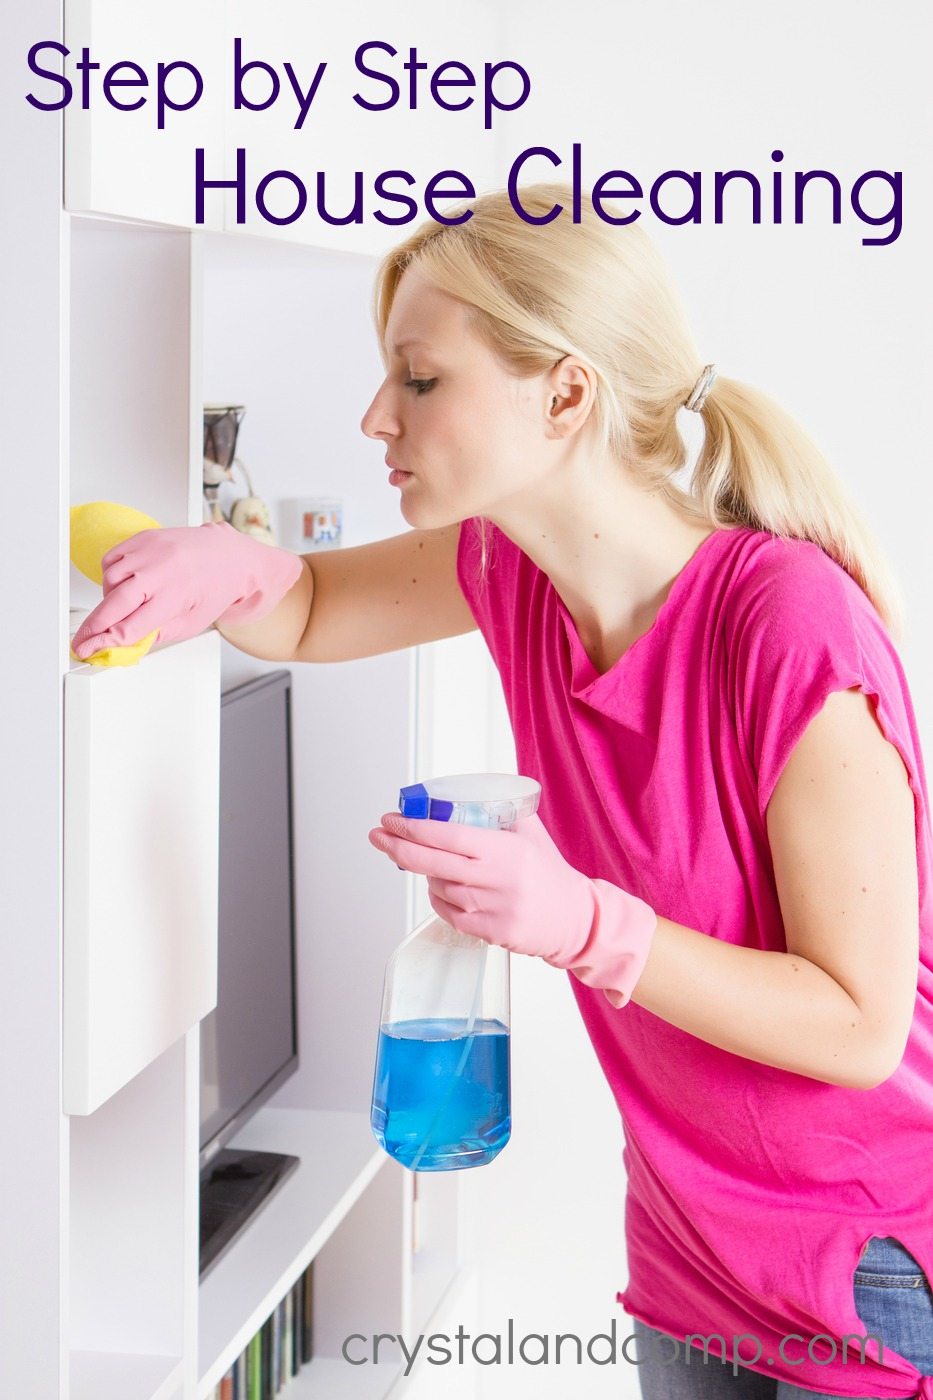 Cleaning house step by step cleaning house for Housekeeping bathroom cleaning procedure